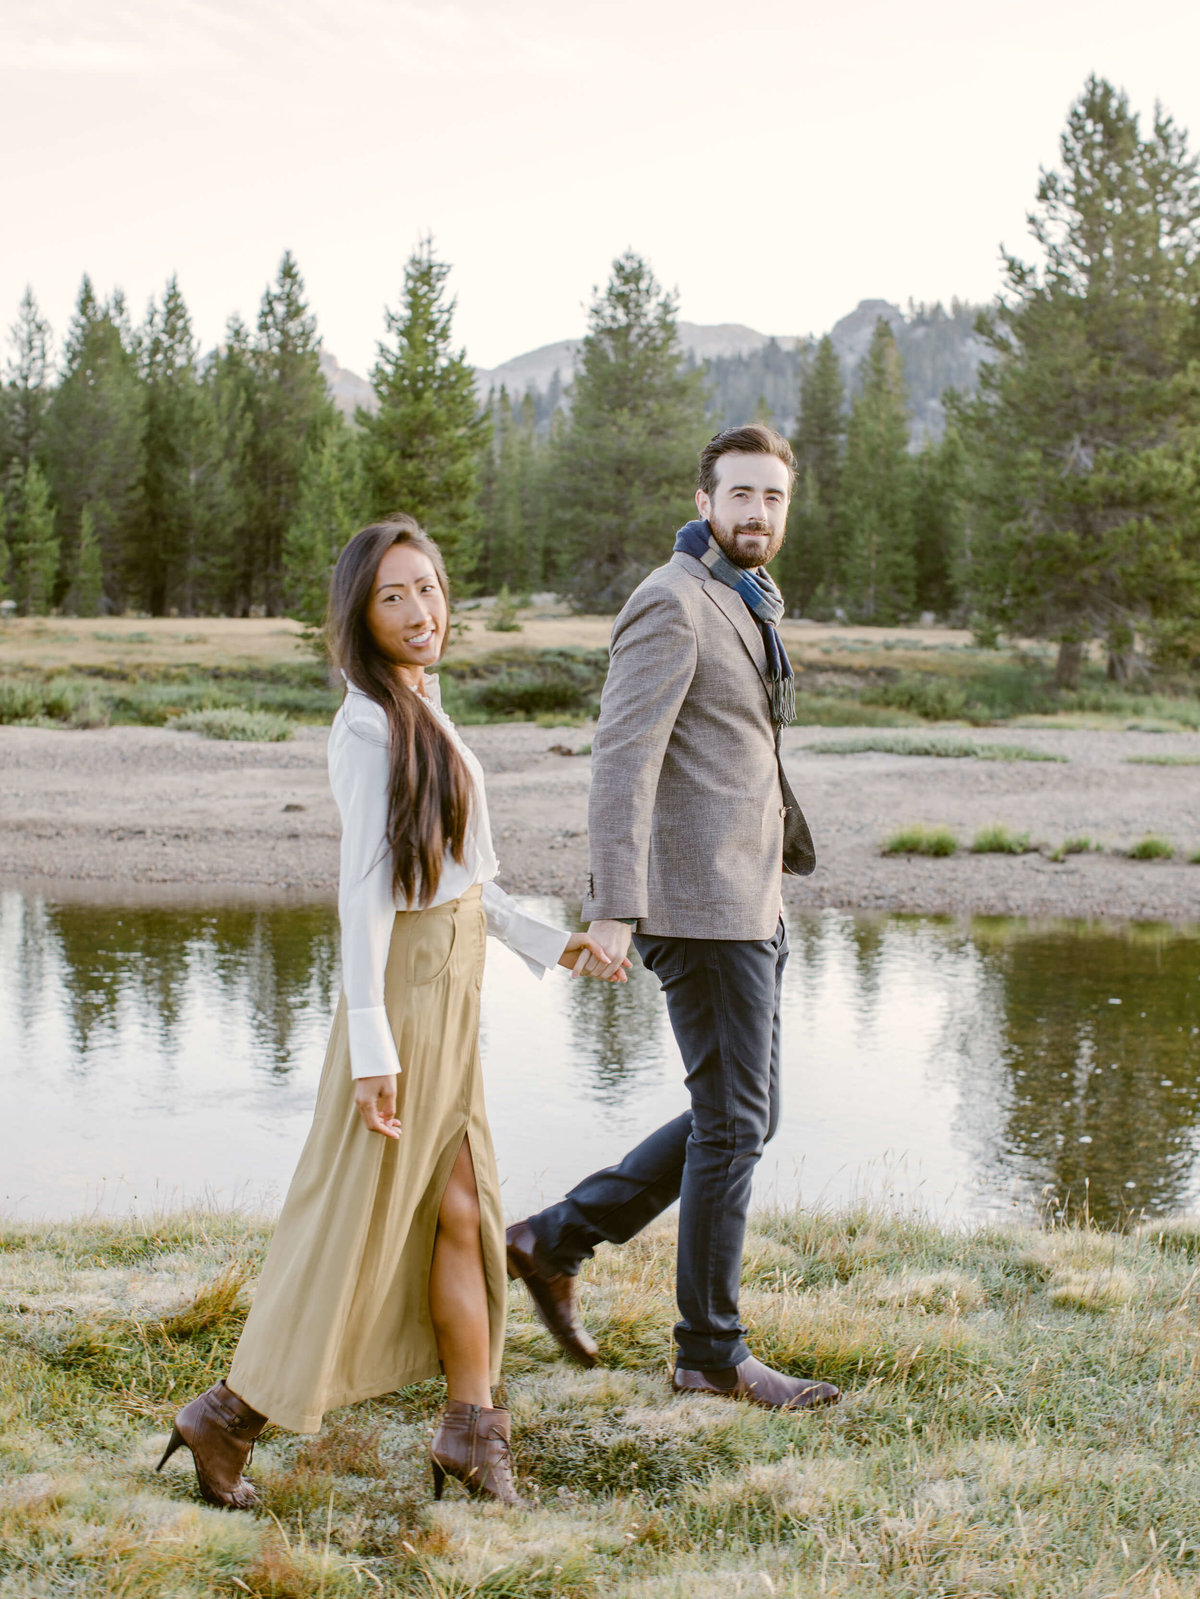 20-KTMerry-engagement-session-outdoor-Yosemite-national-park